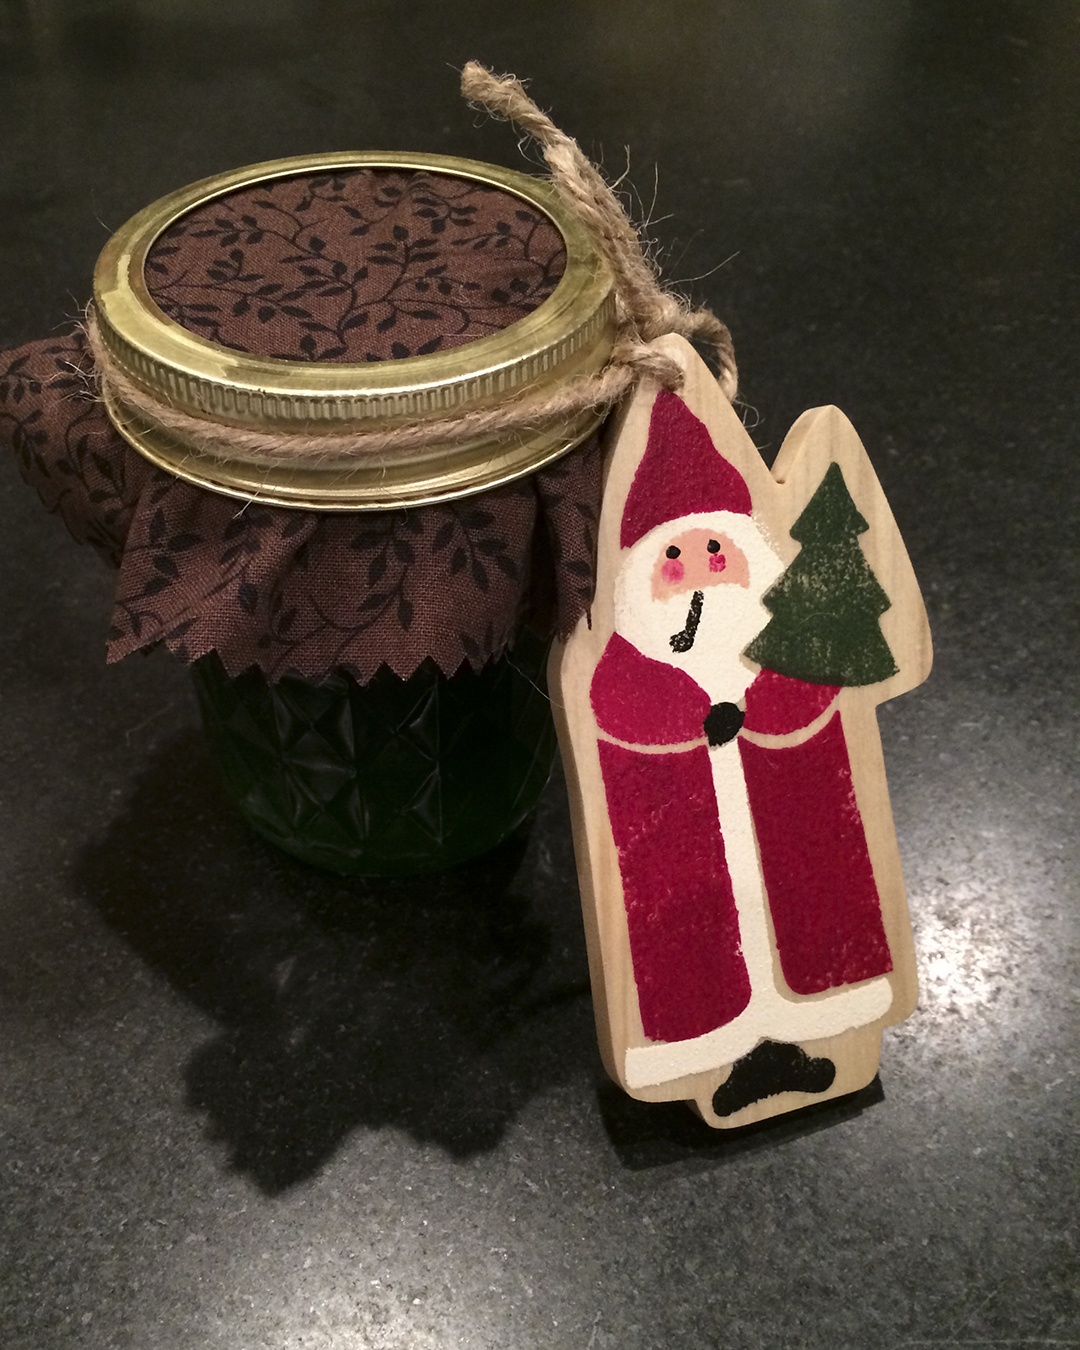 stenciled santa ornament